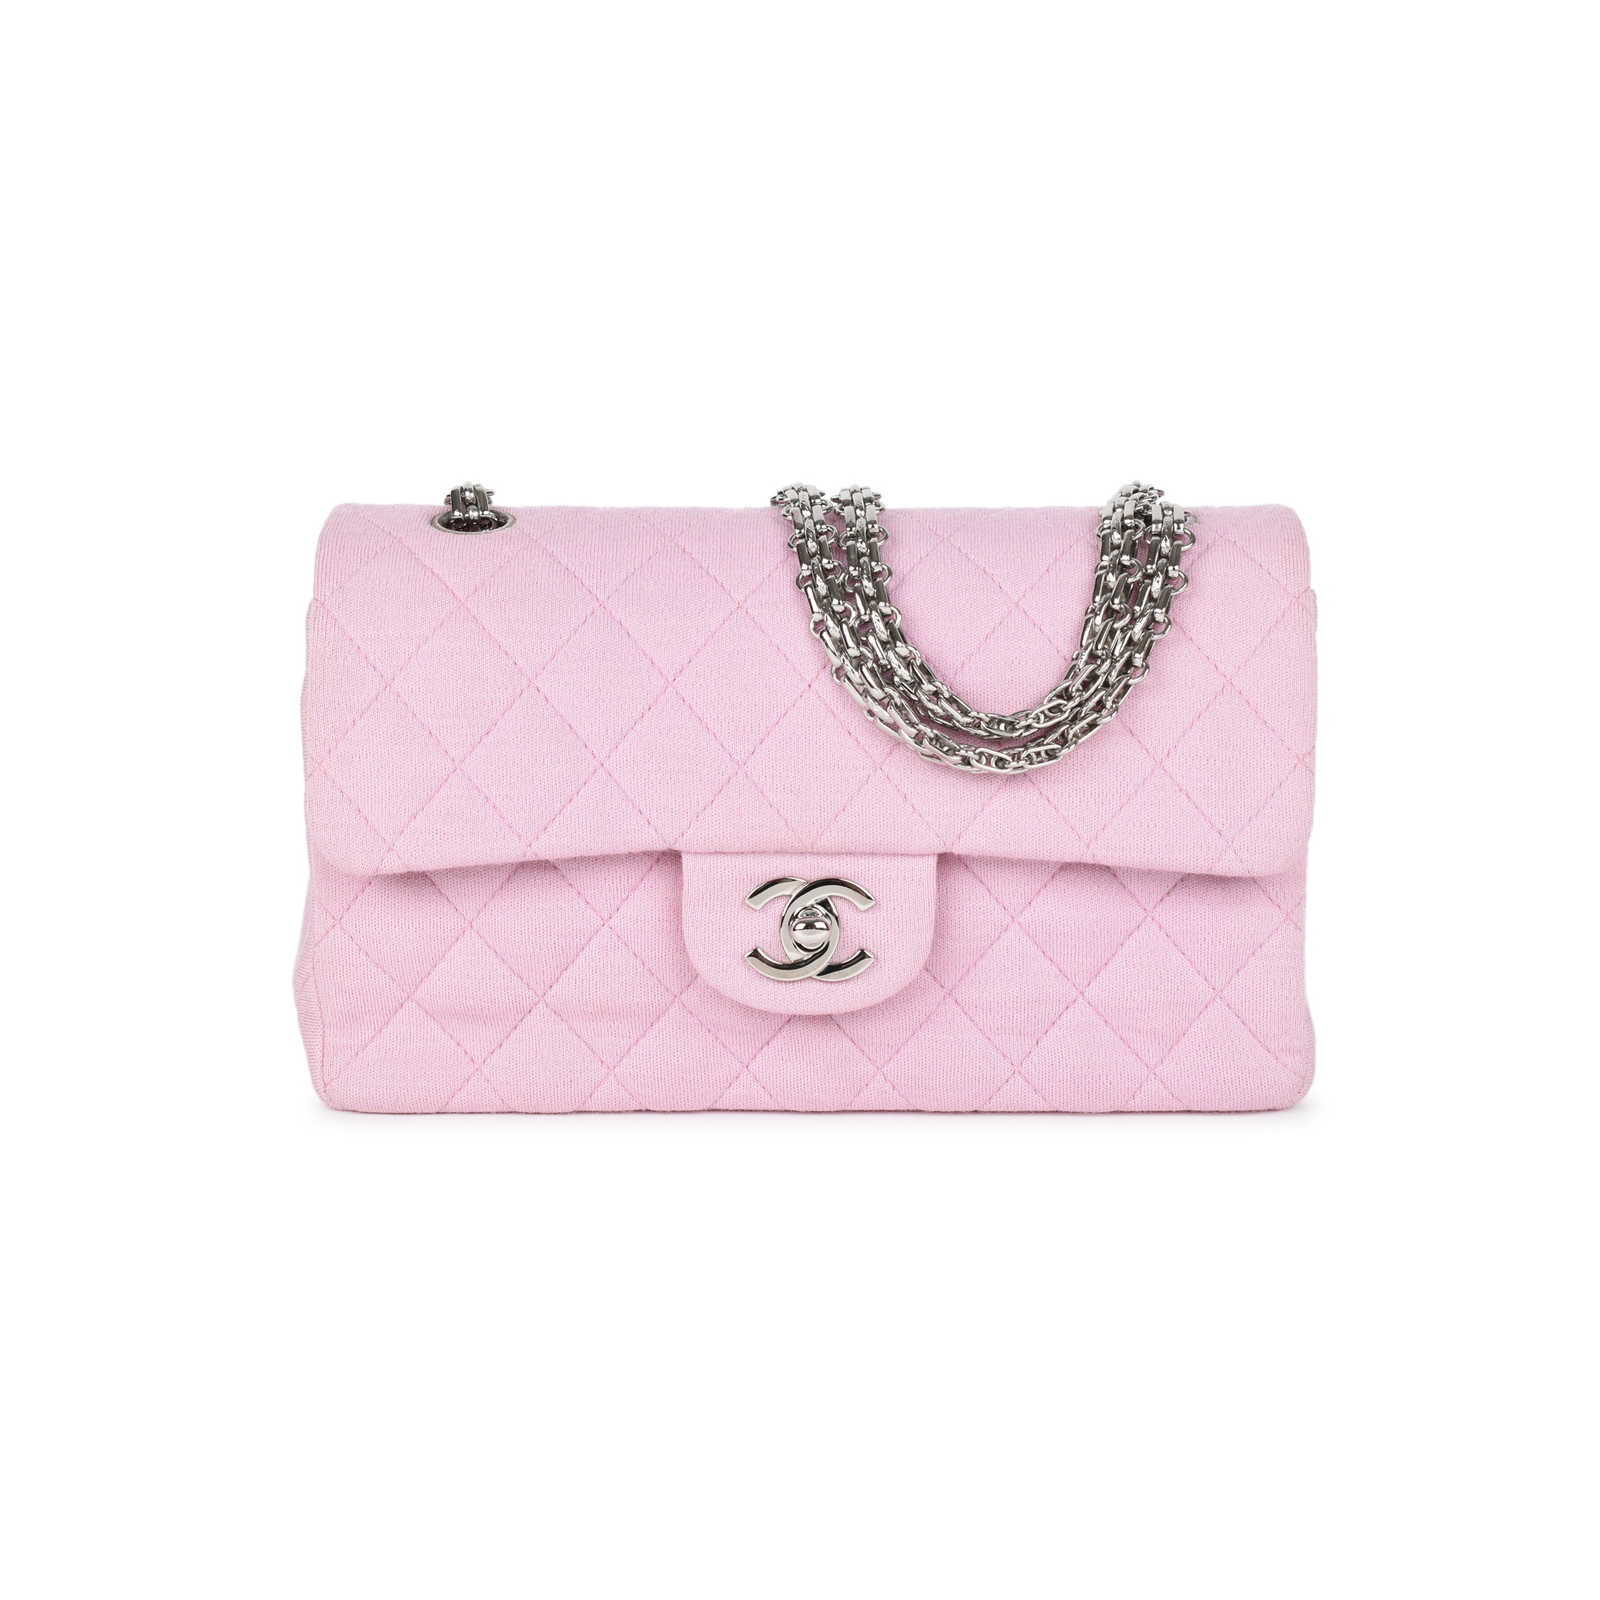 376a7b2e0834 Authentic Second Hand Chanel Baby Pink Jersey Small Classic Flap Bag  (PSS-051- ...